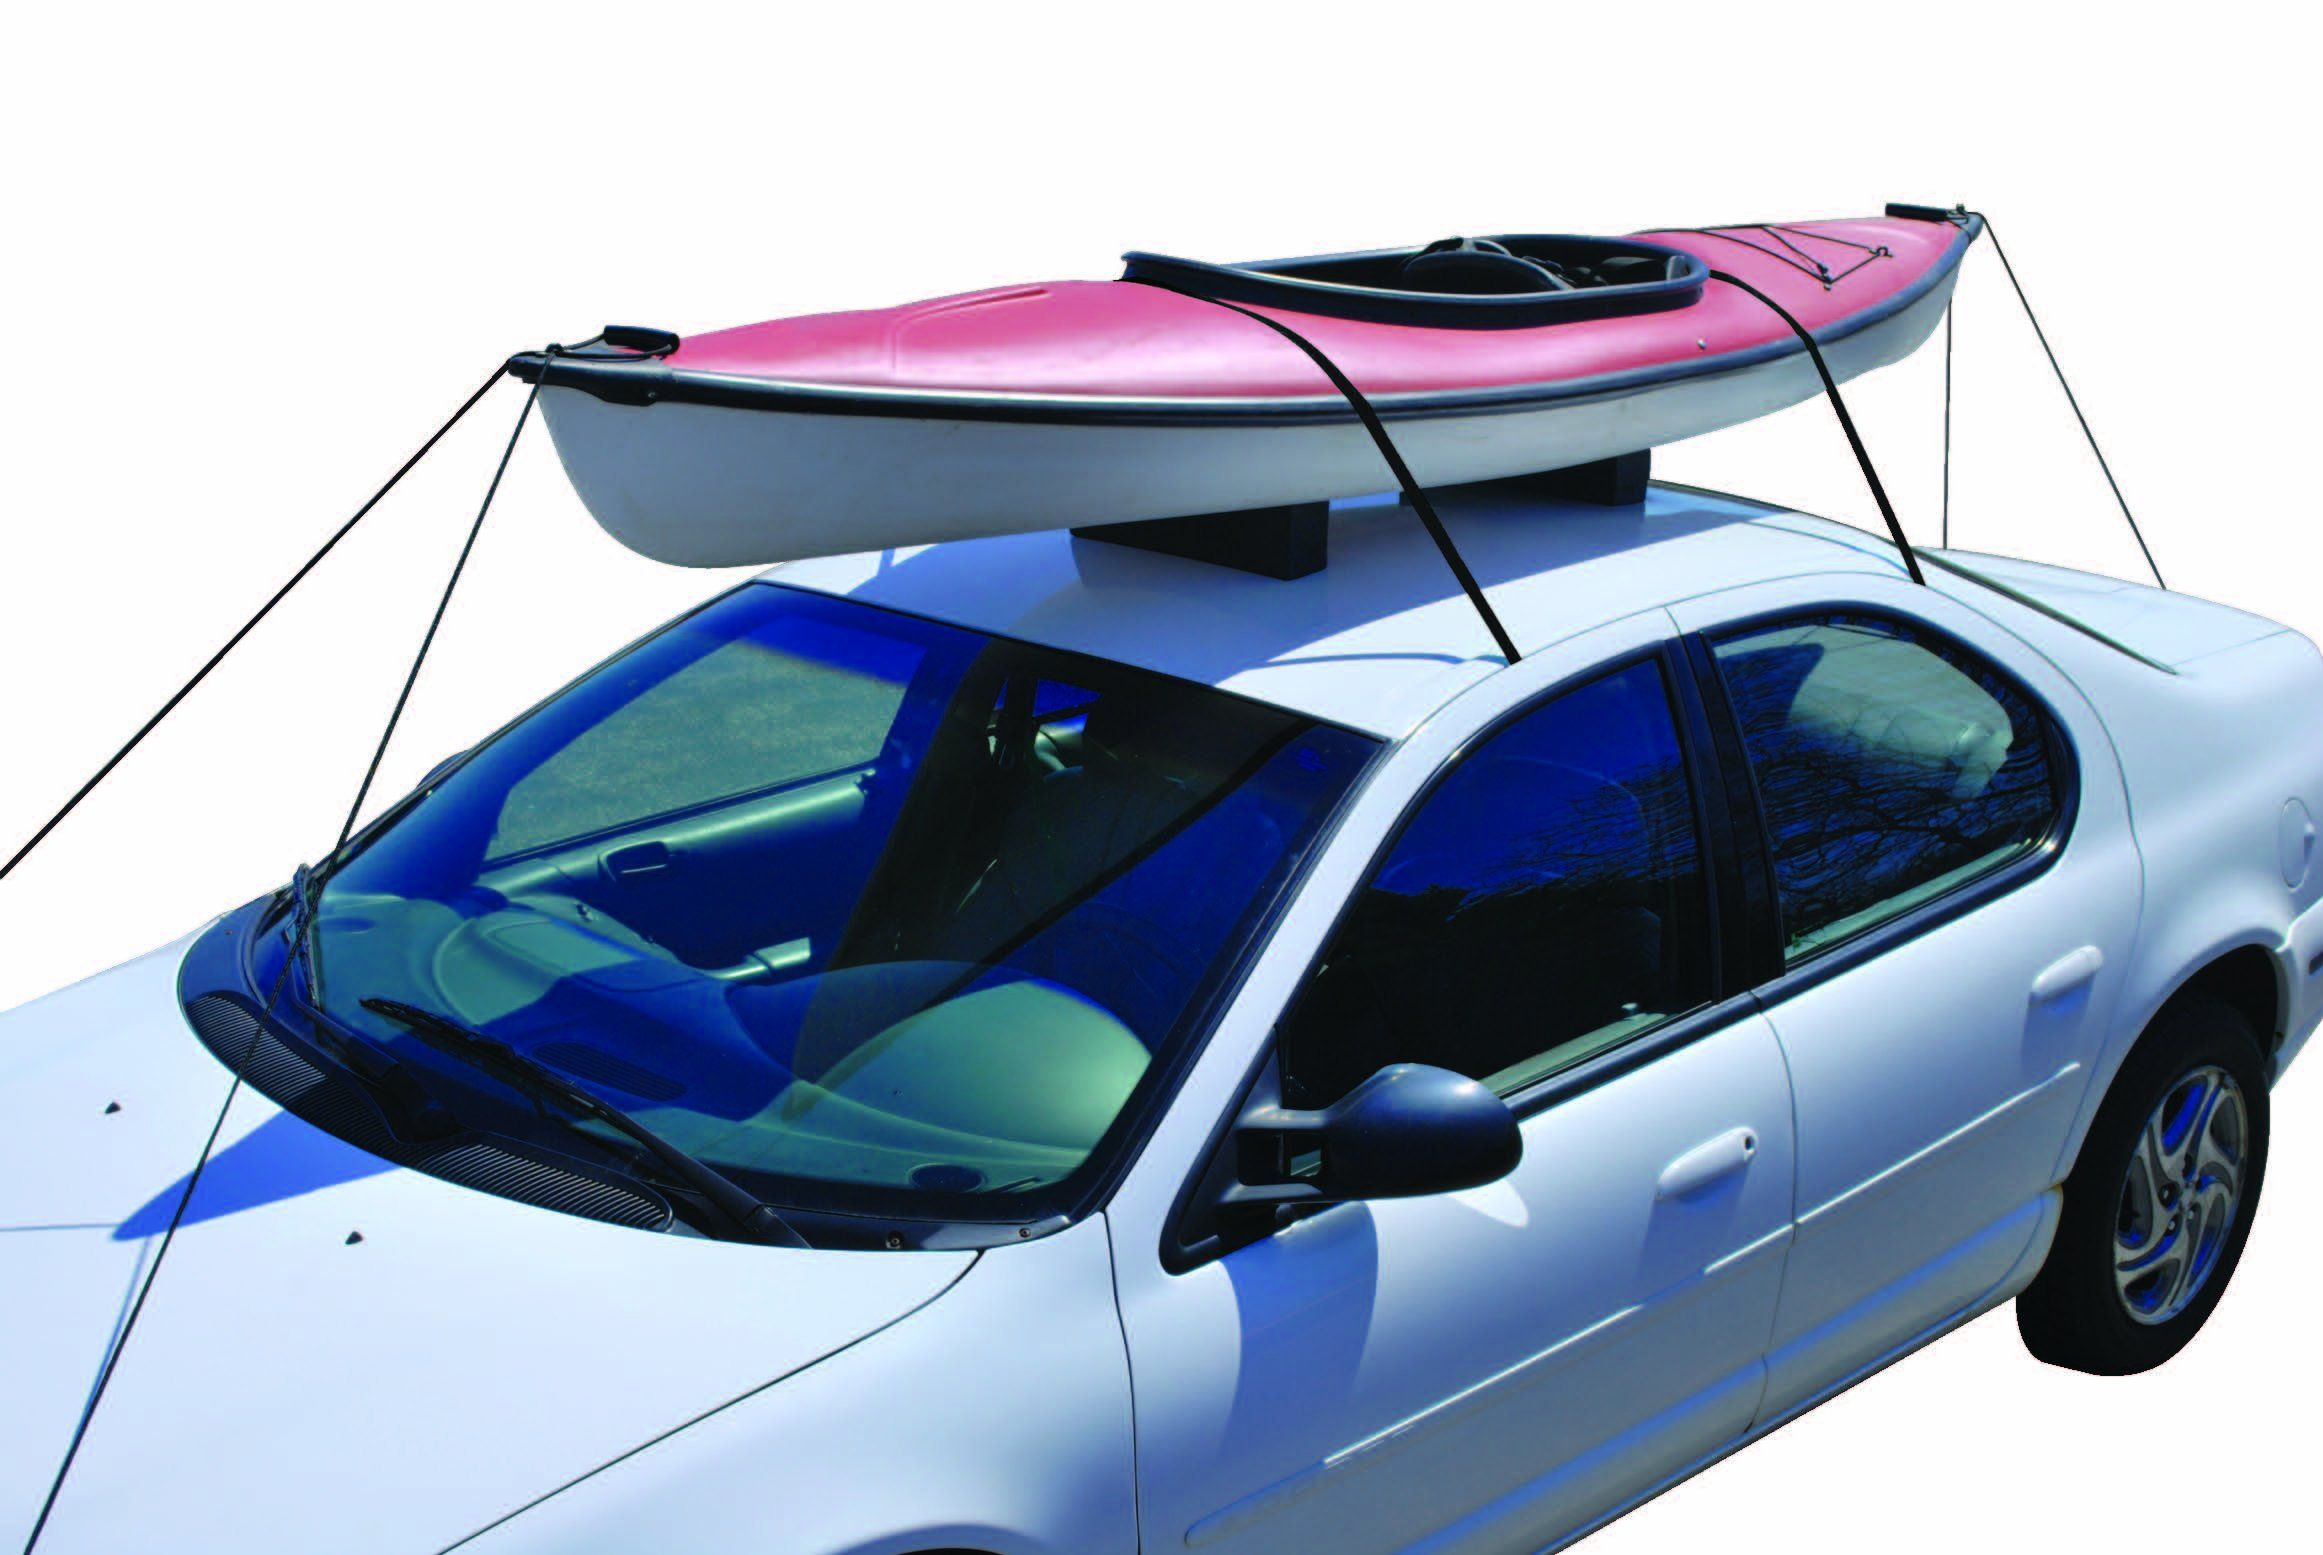 Kayak Roof Rack For Cars >> Car Top Kayak Carrier Kit To Carry Your Boat On An Auto Roof On